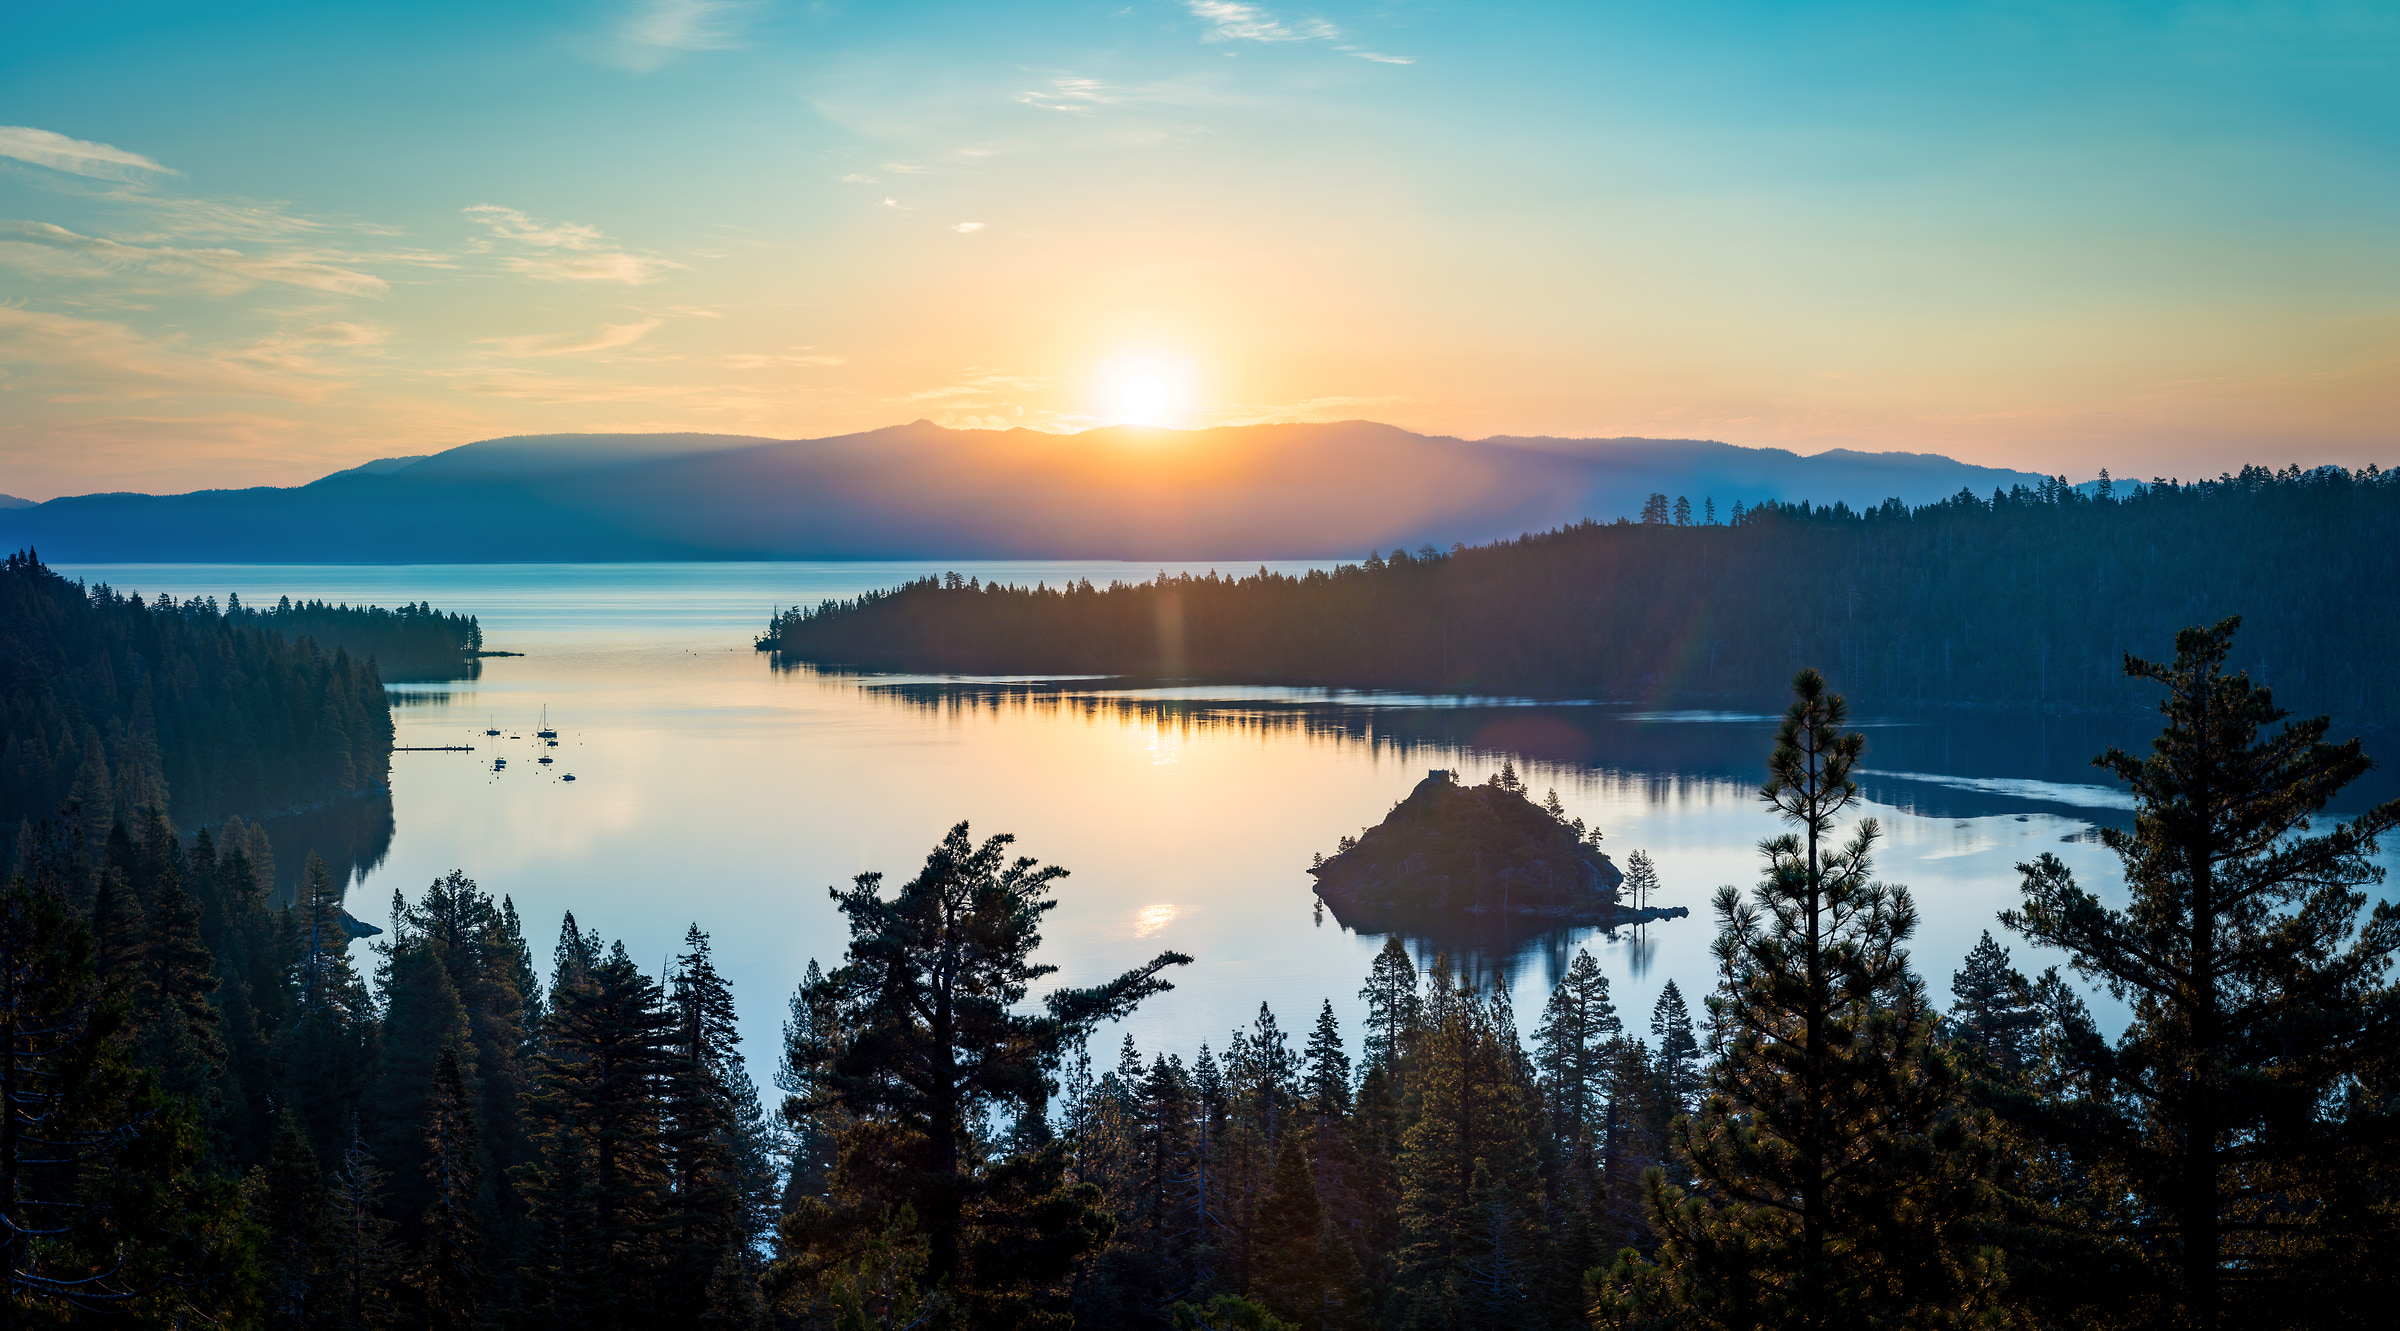 471 megapixels! A very high resolution, large-format VAST photo print of a sunrise over a lake; landscape photograph created by Justin Katz in Emerald Bay, Lake Tahoe, California